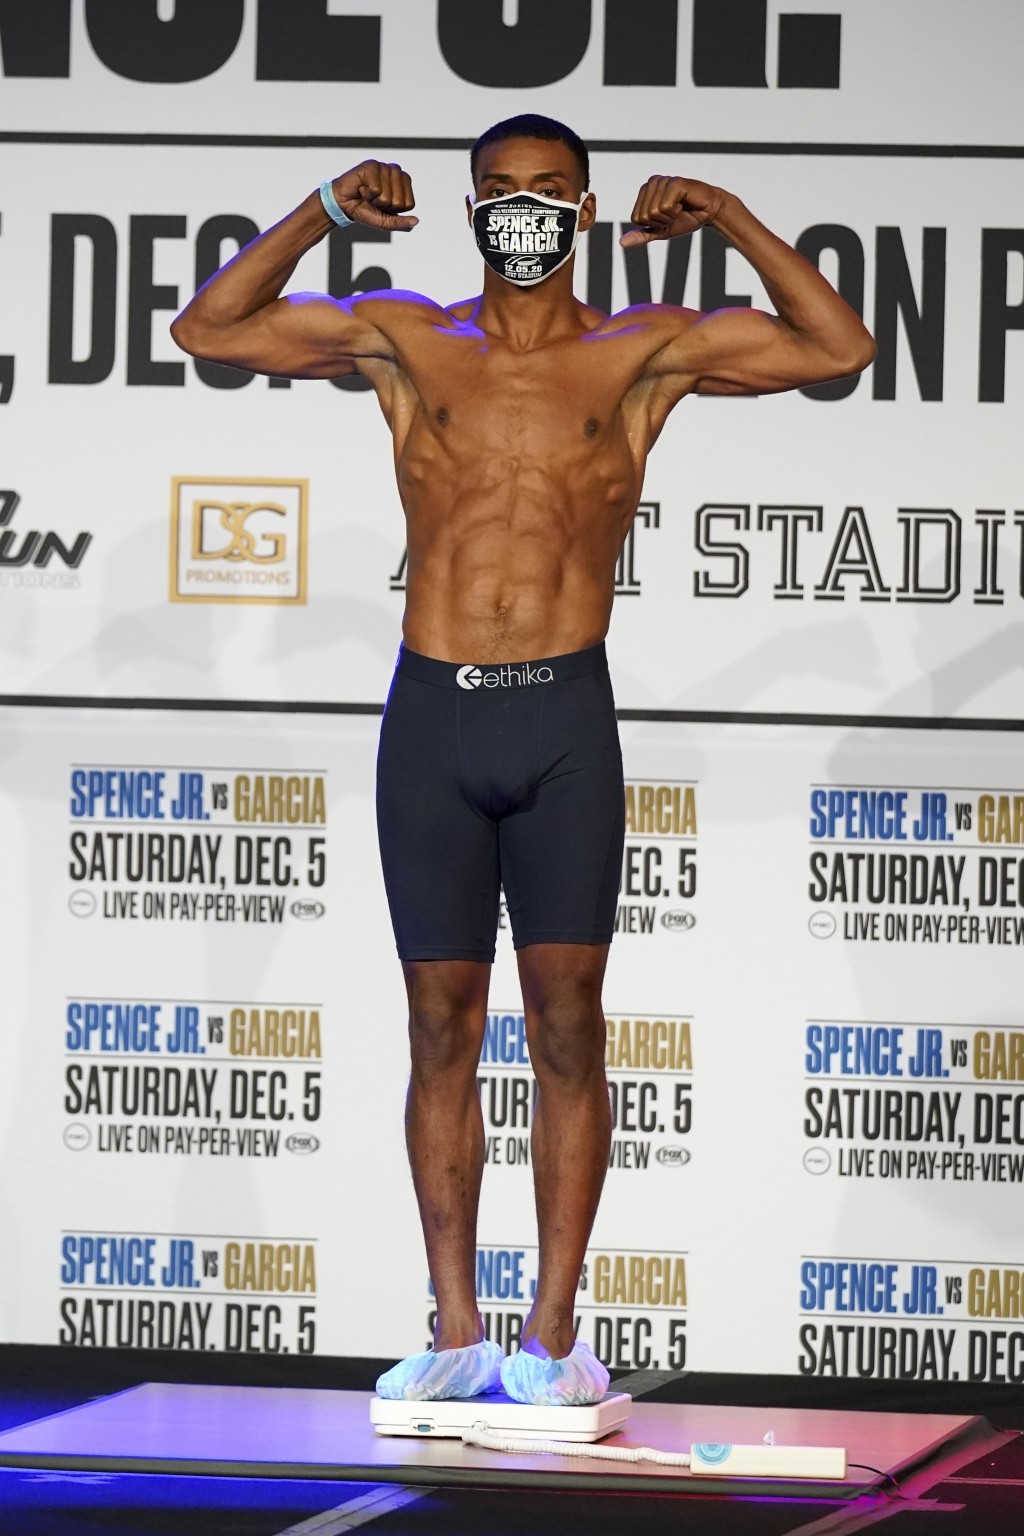 Boxer Errol Spence Jr., poses as he weighs in for a title match against Danny Garcia in Dallas, Friday, Dec. 4, 2020. Spence Jr. is putting his WBC an...